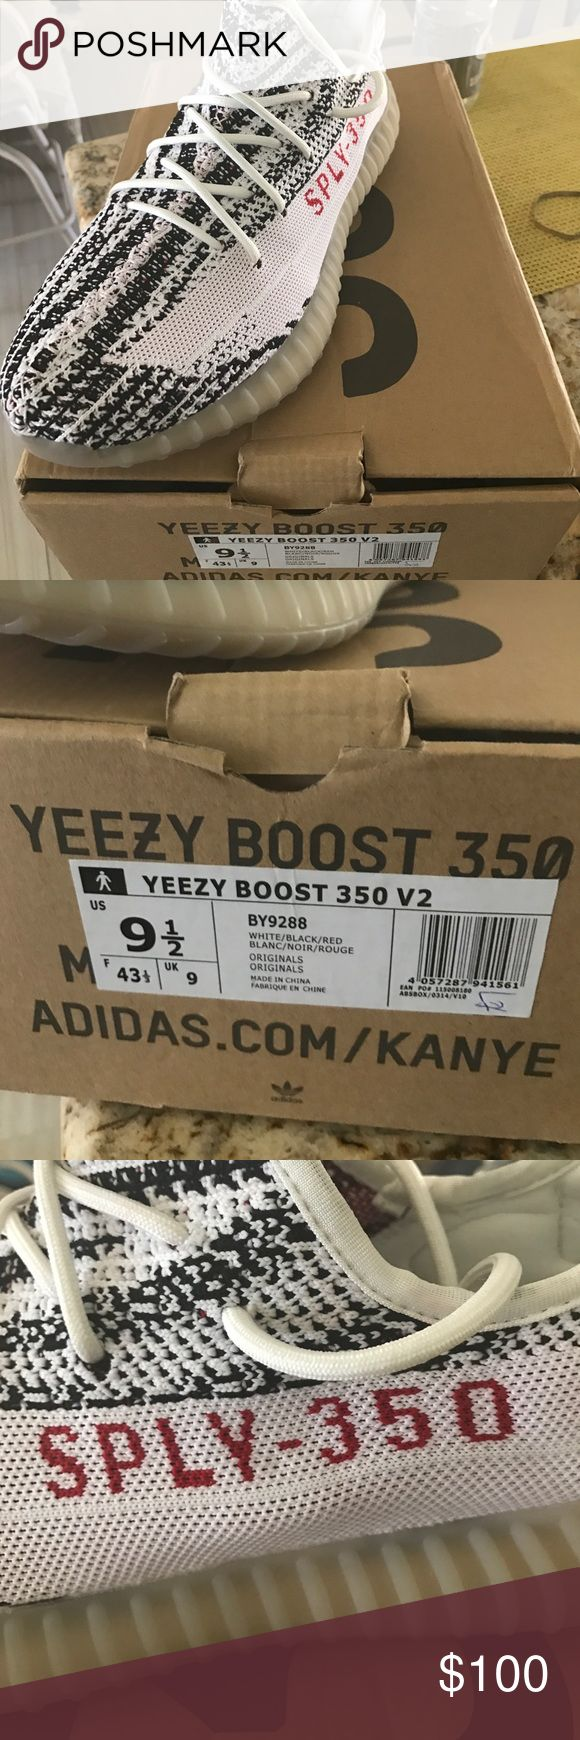 Yeezy Boost 350 vs Zebra UA version Please see the pictures if you have any questions text 6034134332 for a cheaper price Yeezy Shoes Sneakers